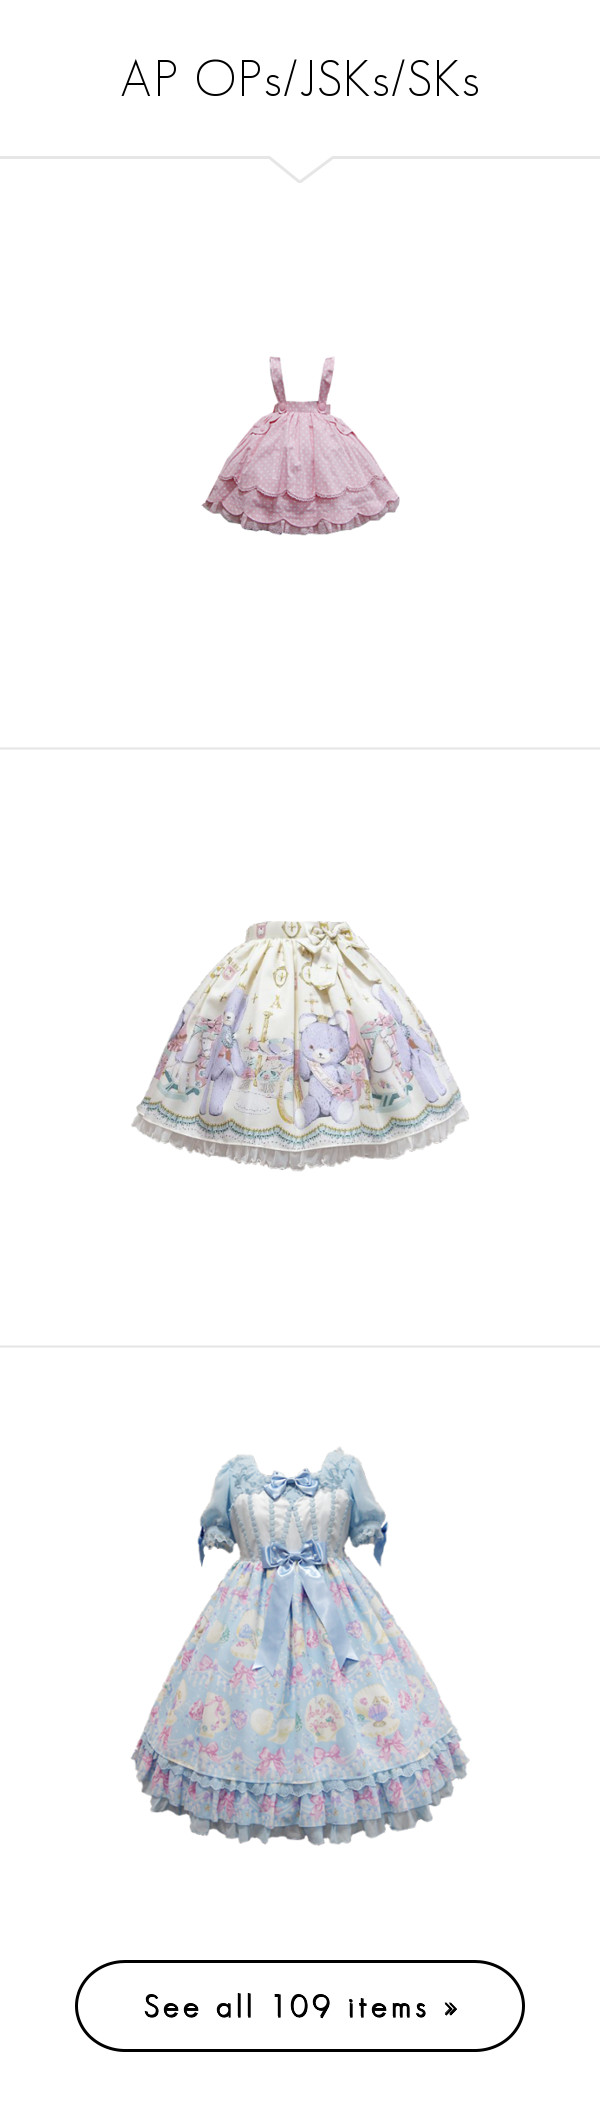 """AP OPs/JSKs/SKs"" by cosmic-sky ❤ liked on Polyvore featuring skirts, dresses, lolita, bottoms, angelic pretty, op, jsk, jumper skirt, lolita op and one piece"